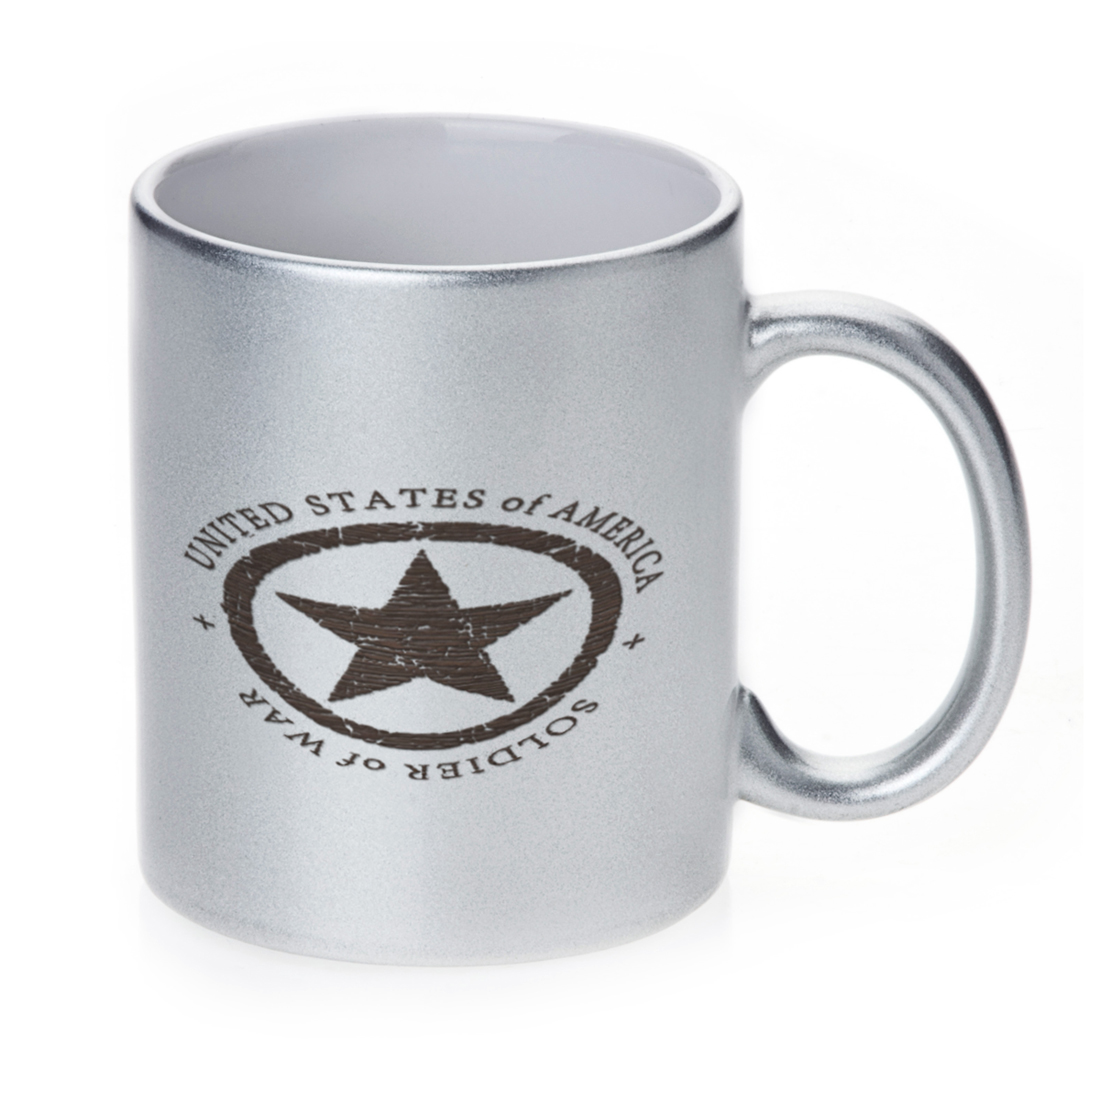 KuzmarK Silver Sparkle Coffee Cup Mug 11 Ounce - Military Soldier Of War Wood Star